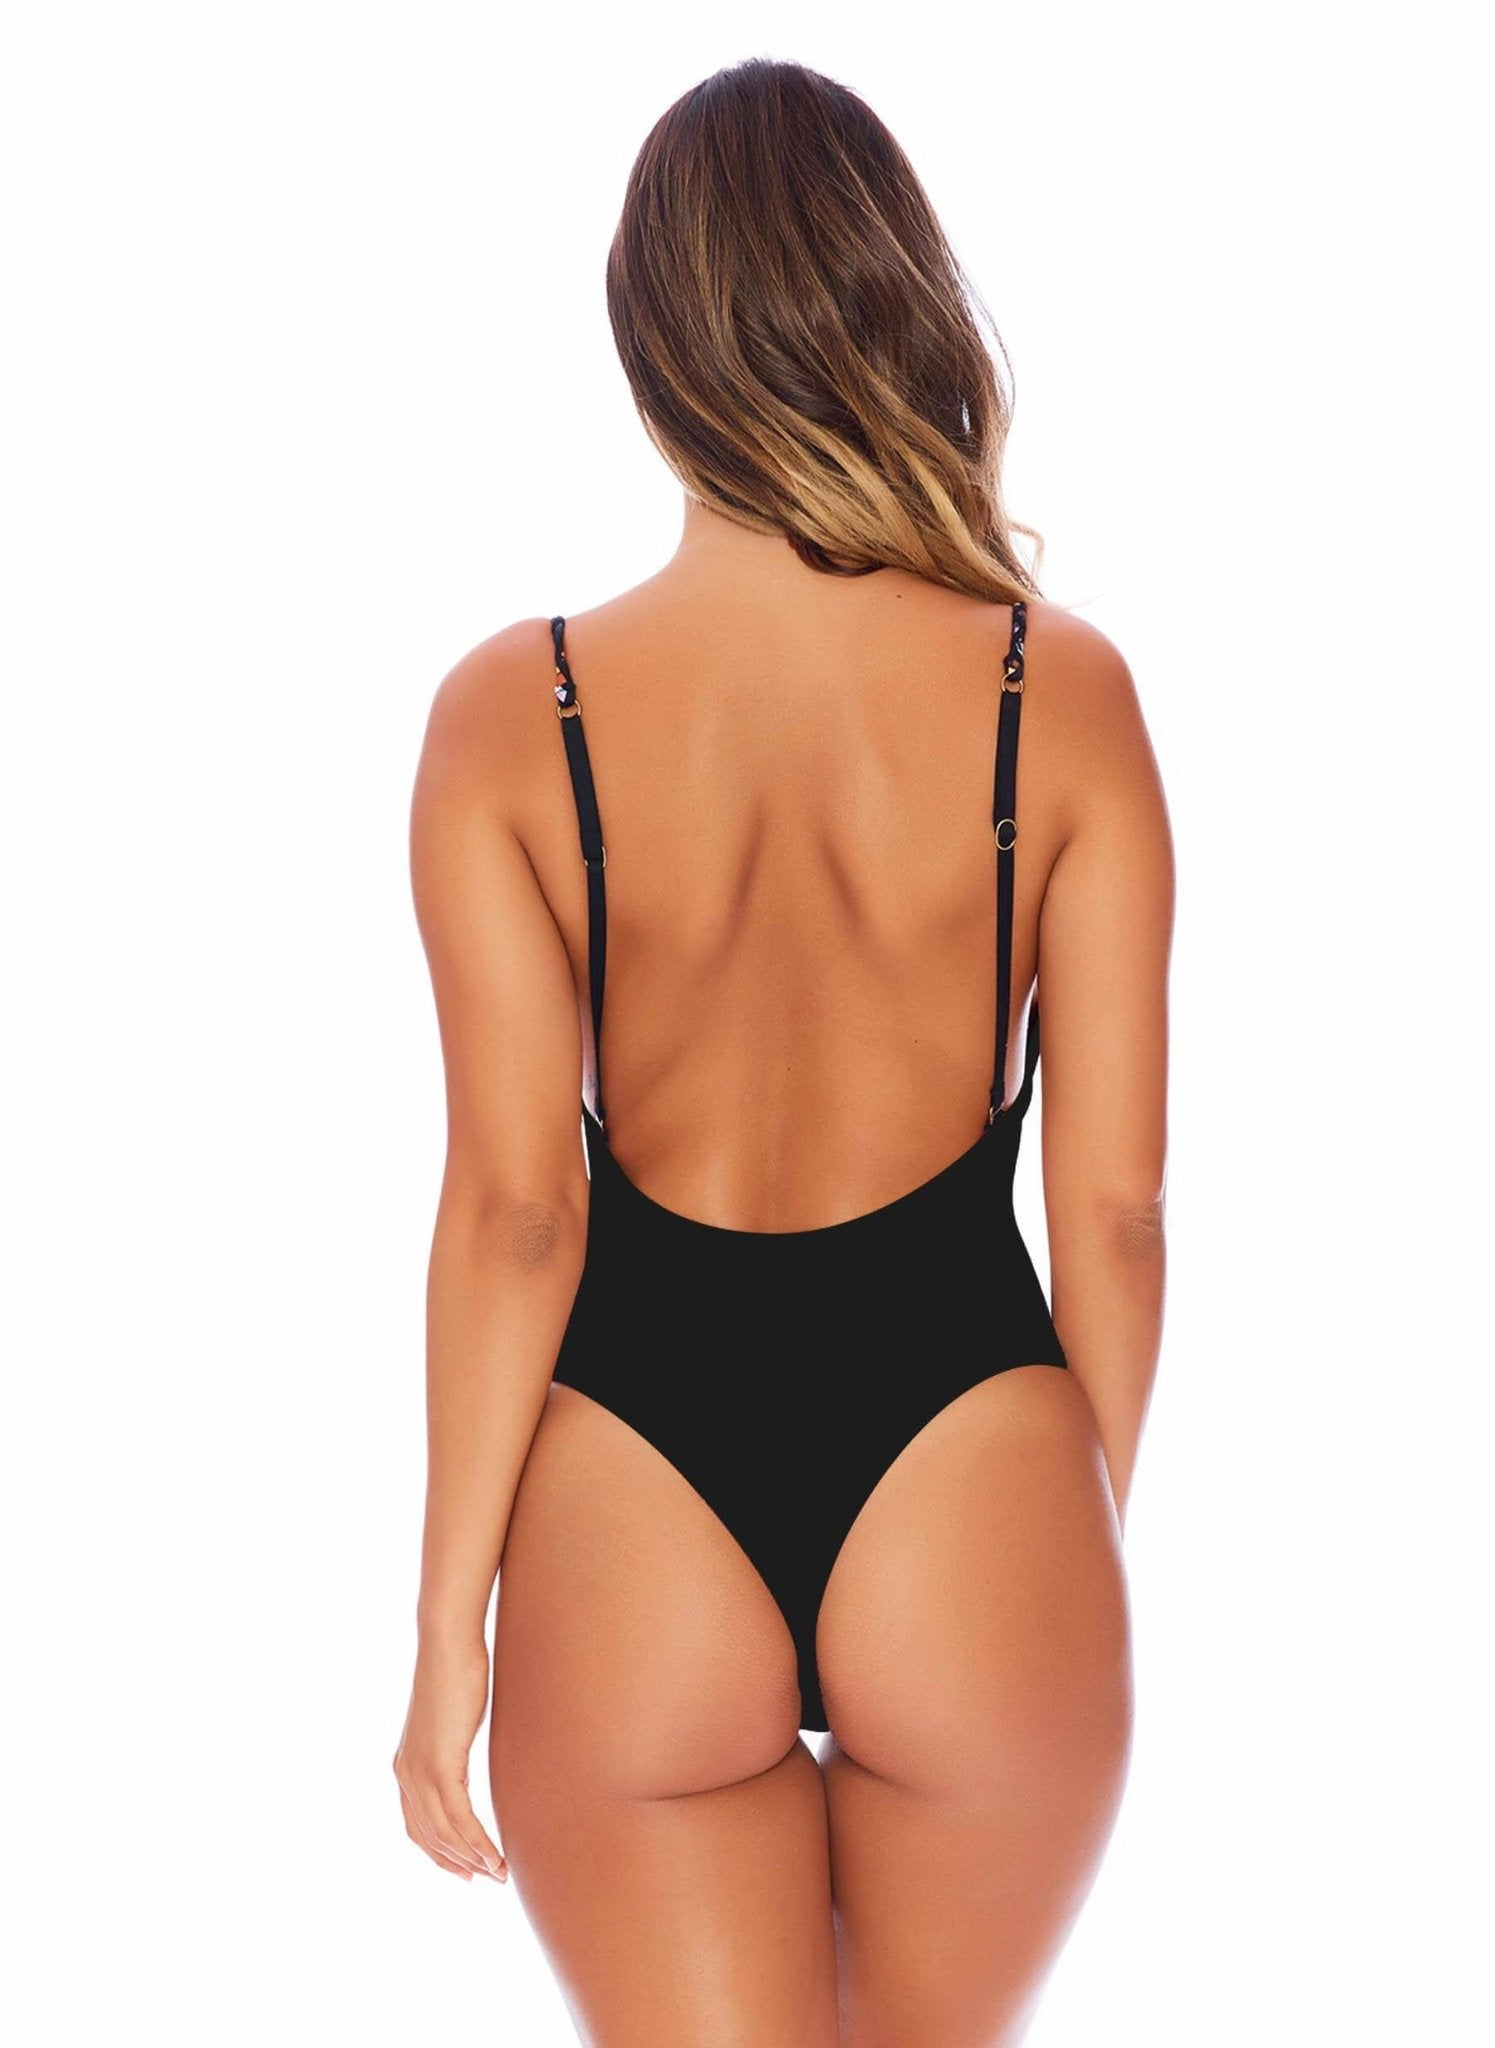 Brazenly Braided One Piece in Midnight – Semi-Brazilian